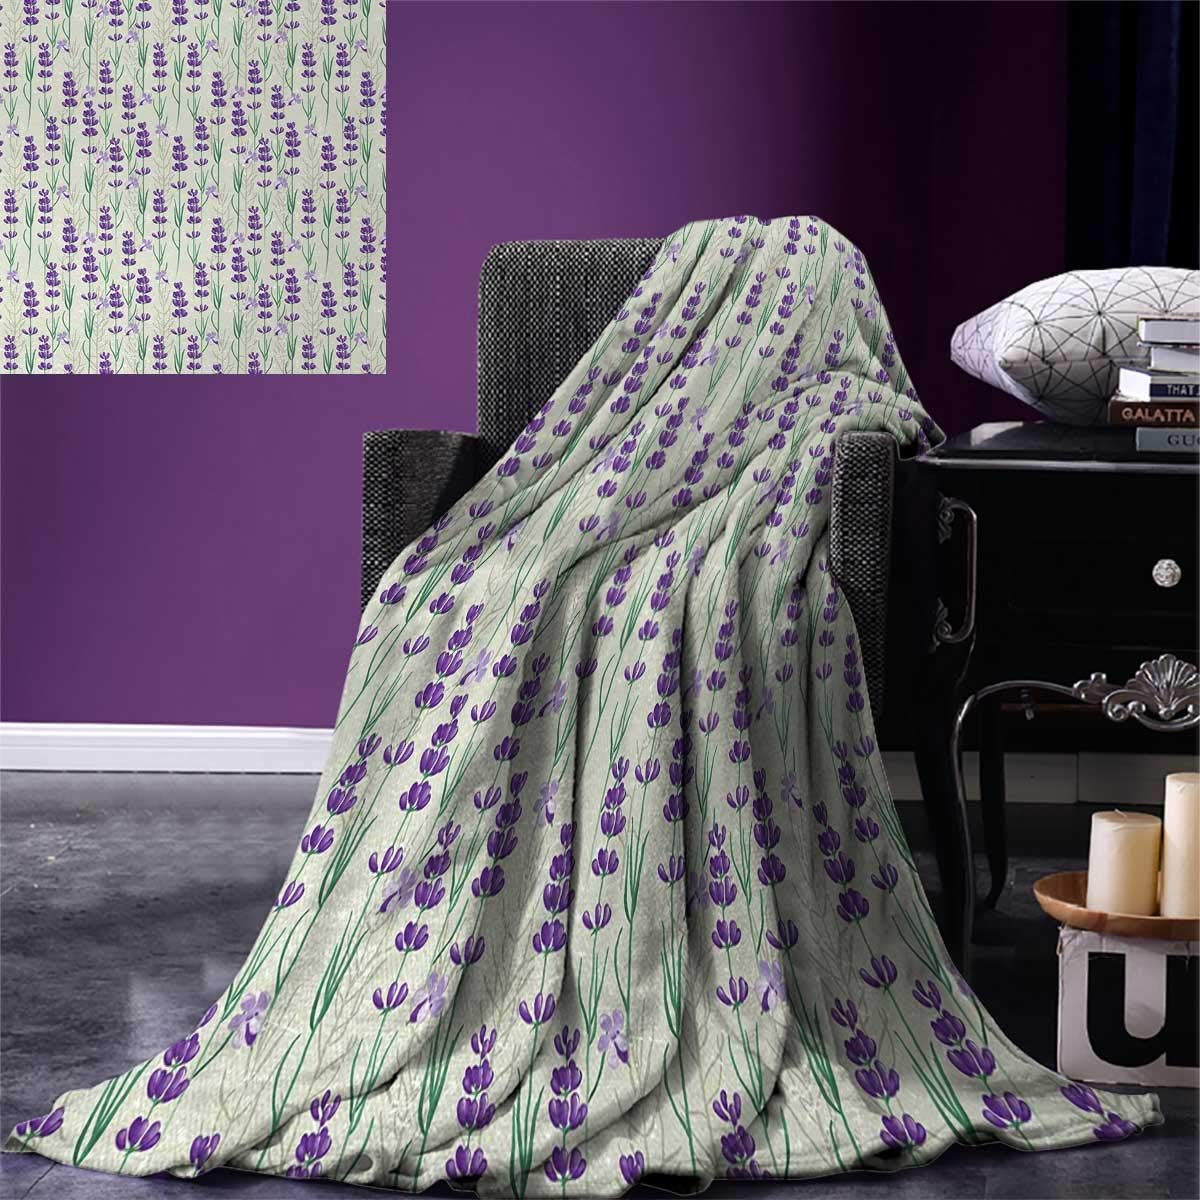 smallbeefly Lavender Throw Blanket Botanical Pattern Fresh Herbs Aromatherapy Spa Theme Warm Microfiber All Season Blanket Bed Couch 50''x30'' Pale Sage Green Violet Green